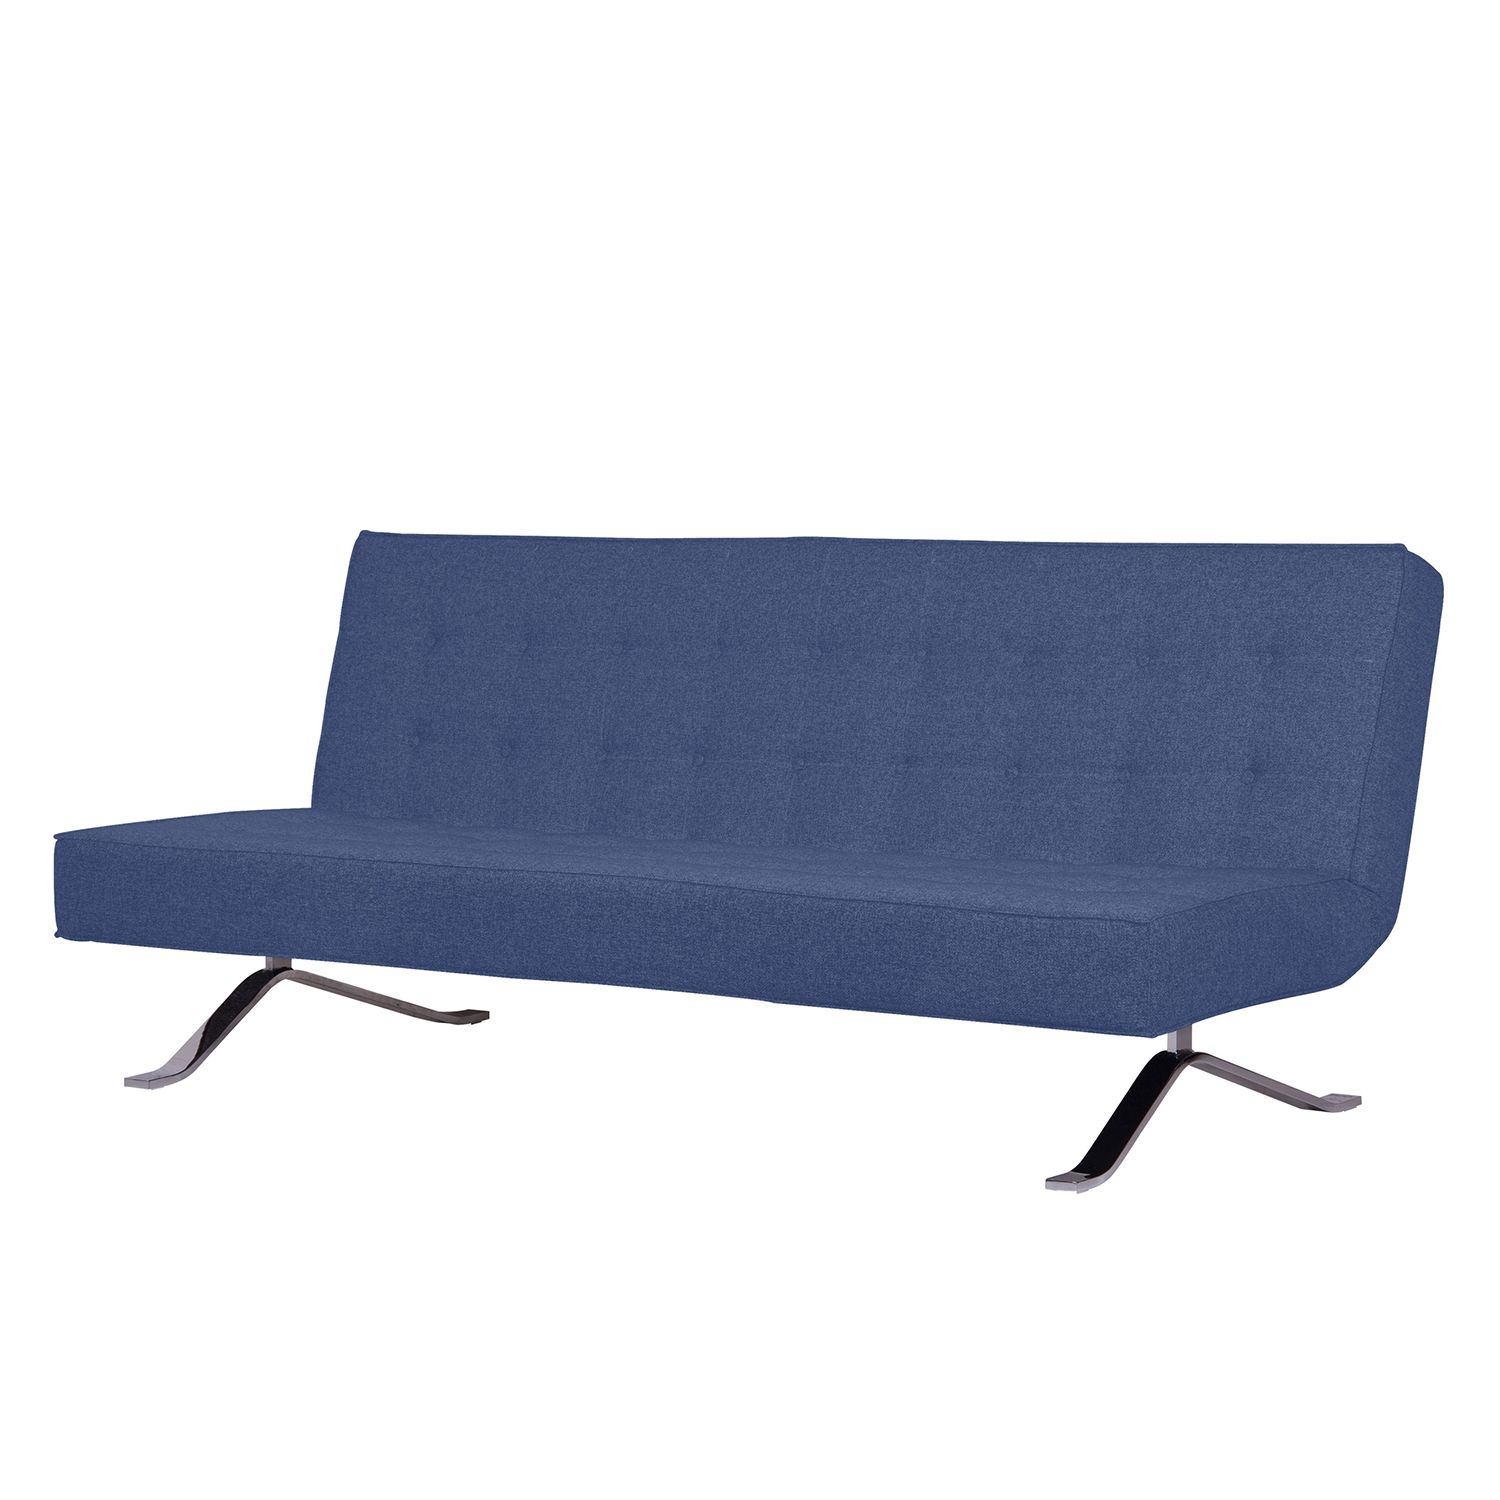 Schlafsofa Wave Two - Webstoff - Stoff Bora Blau